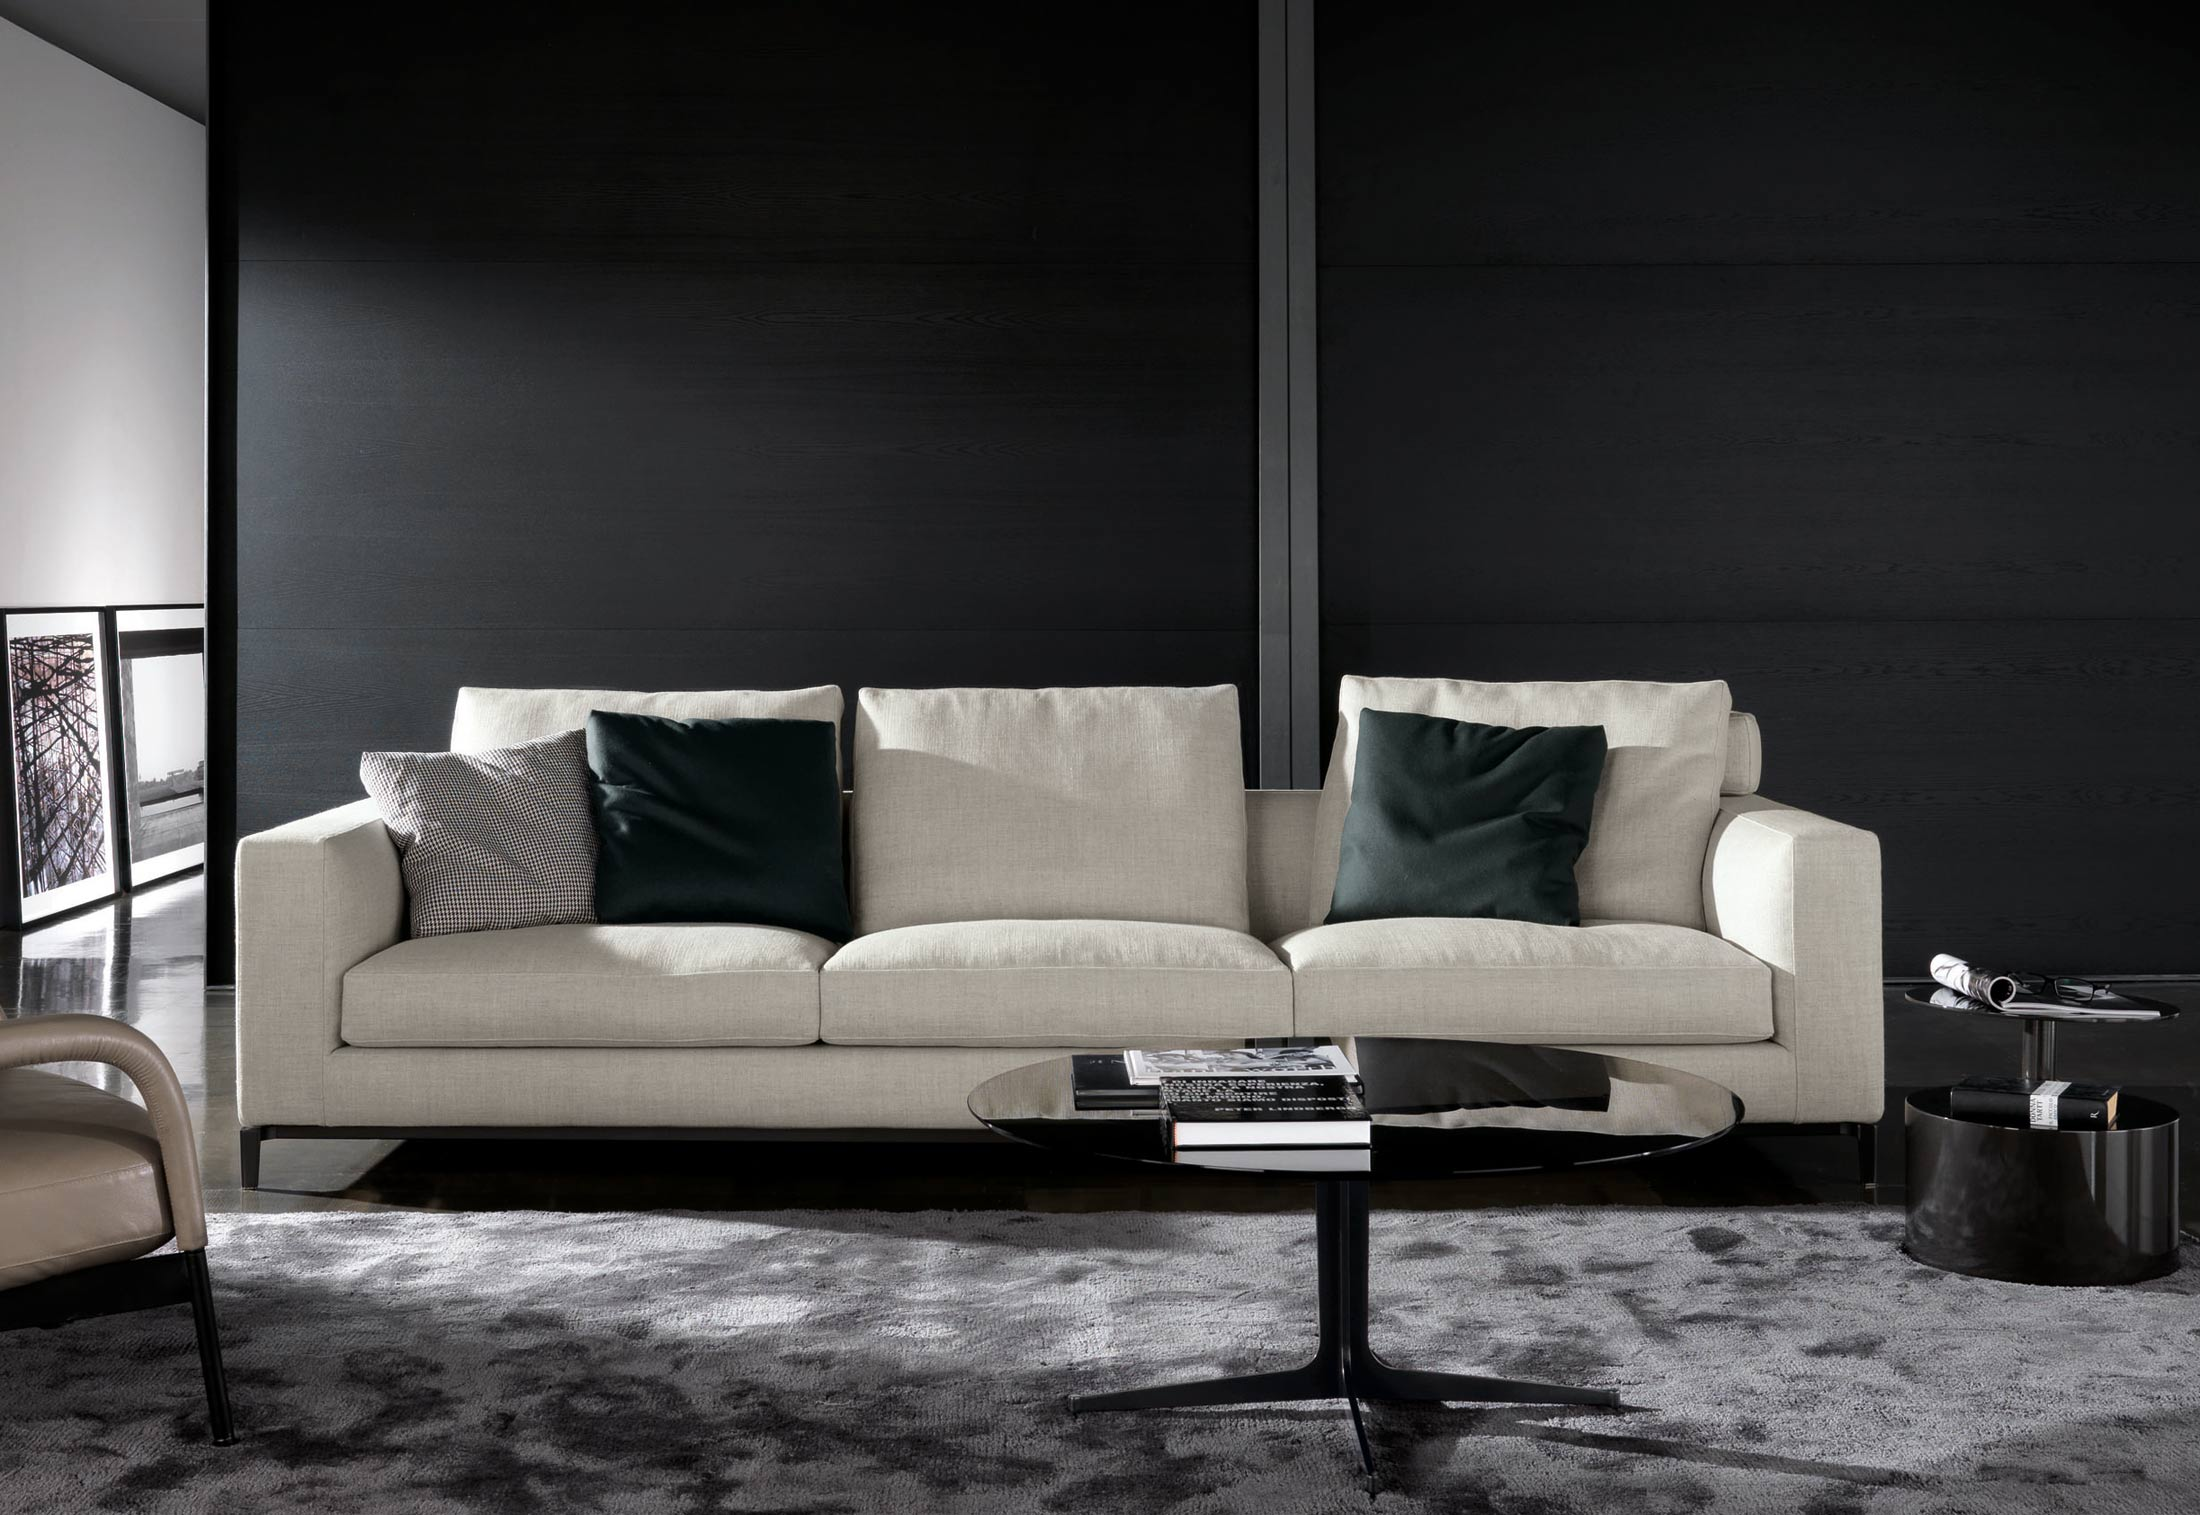 Full Size of Minotti Sofa Outlet Andersen Freeman Dimensions Cad Block Indiana Seating System Uk Duvet List Alexander Hamilton For Sale Couch Von Stylepark Stilecht 2 Sofa Minotti Sofa